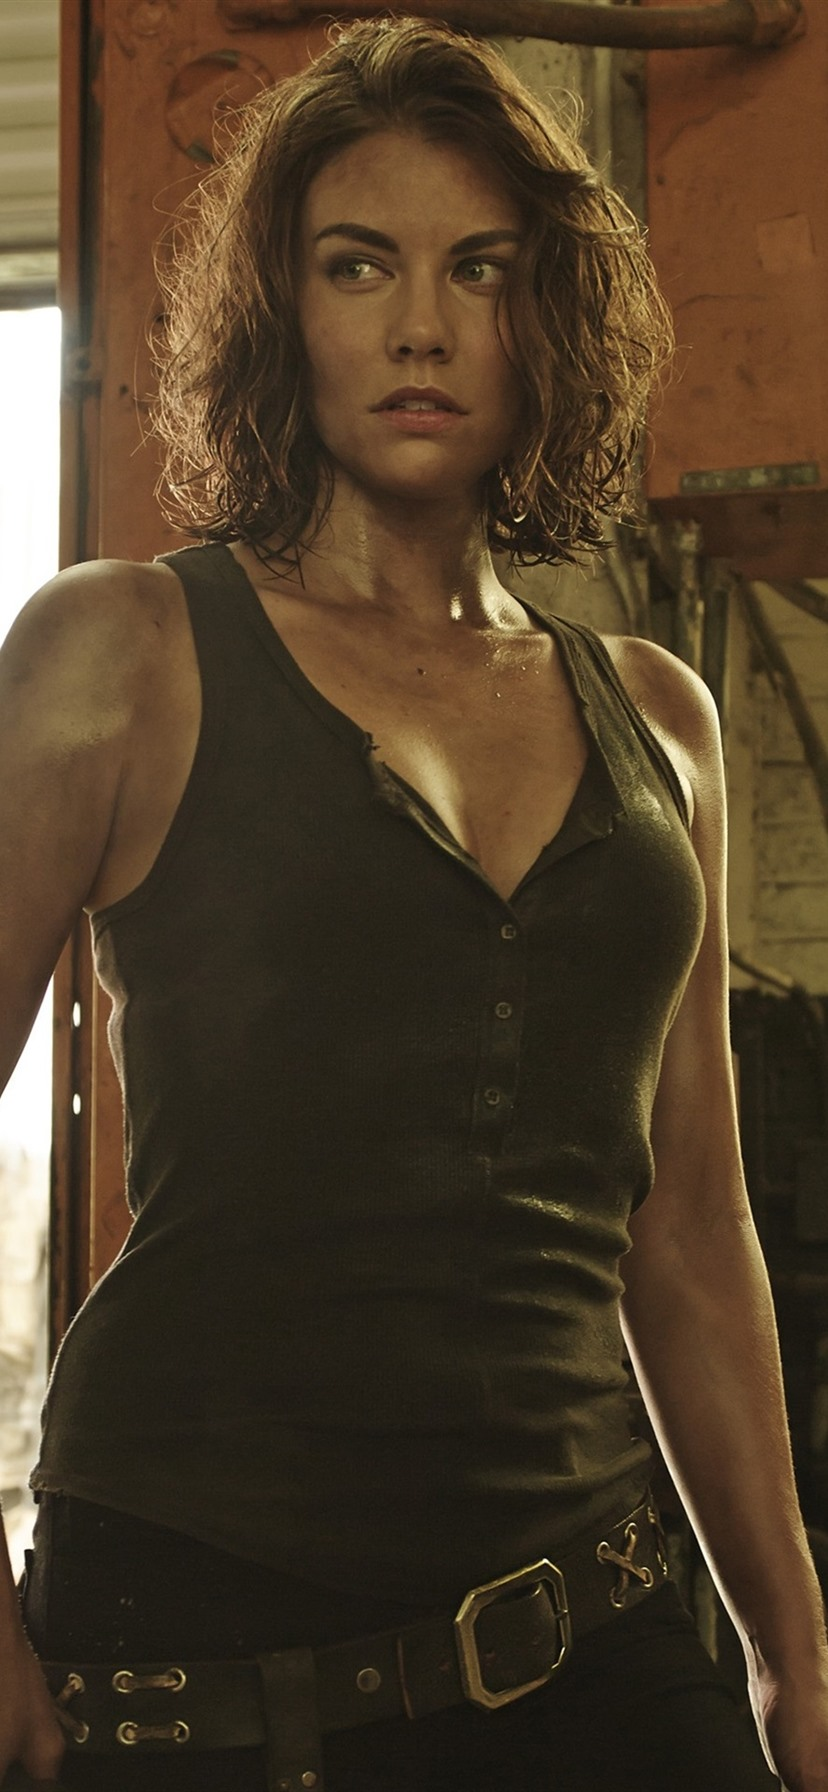 Twd hot maggie 15 Hottest